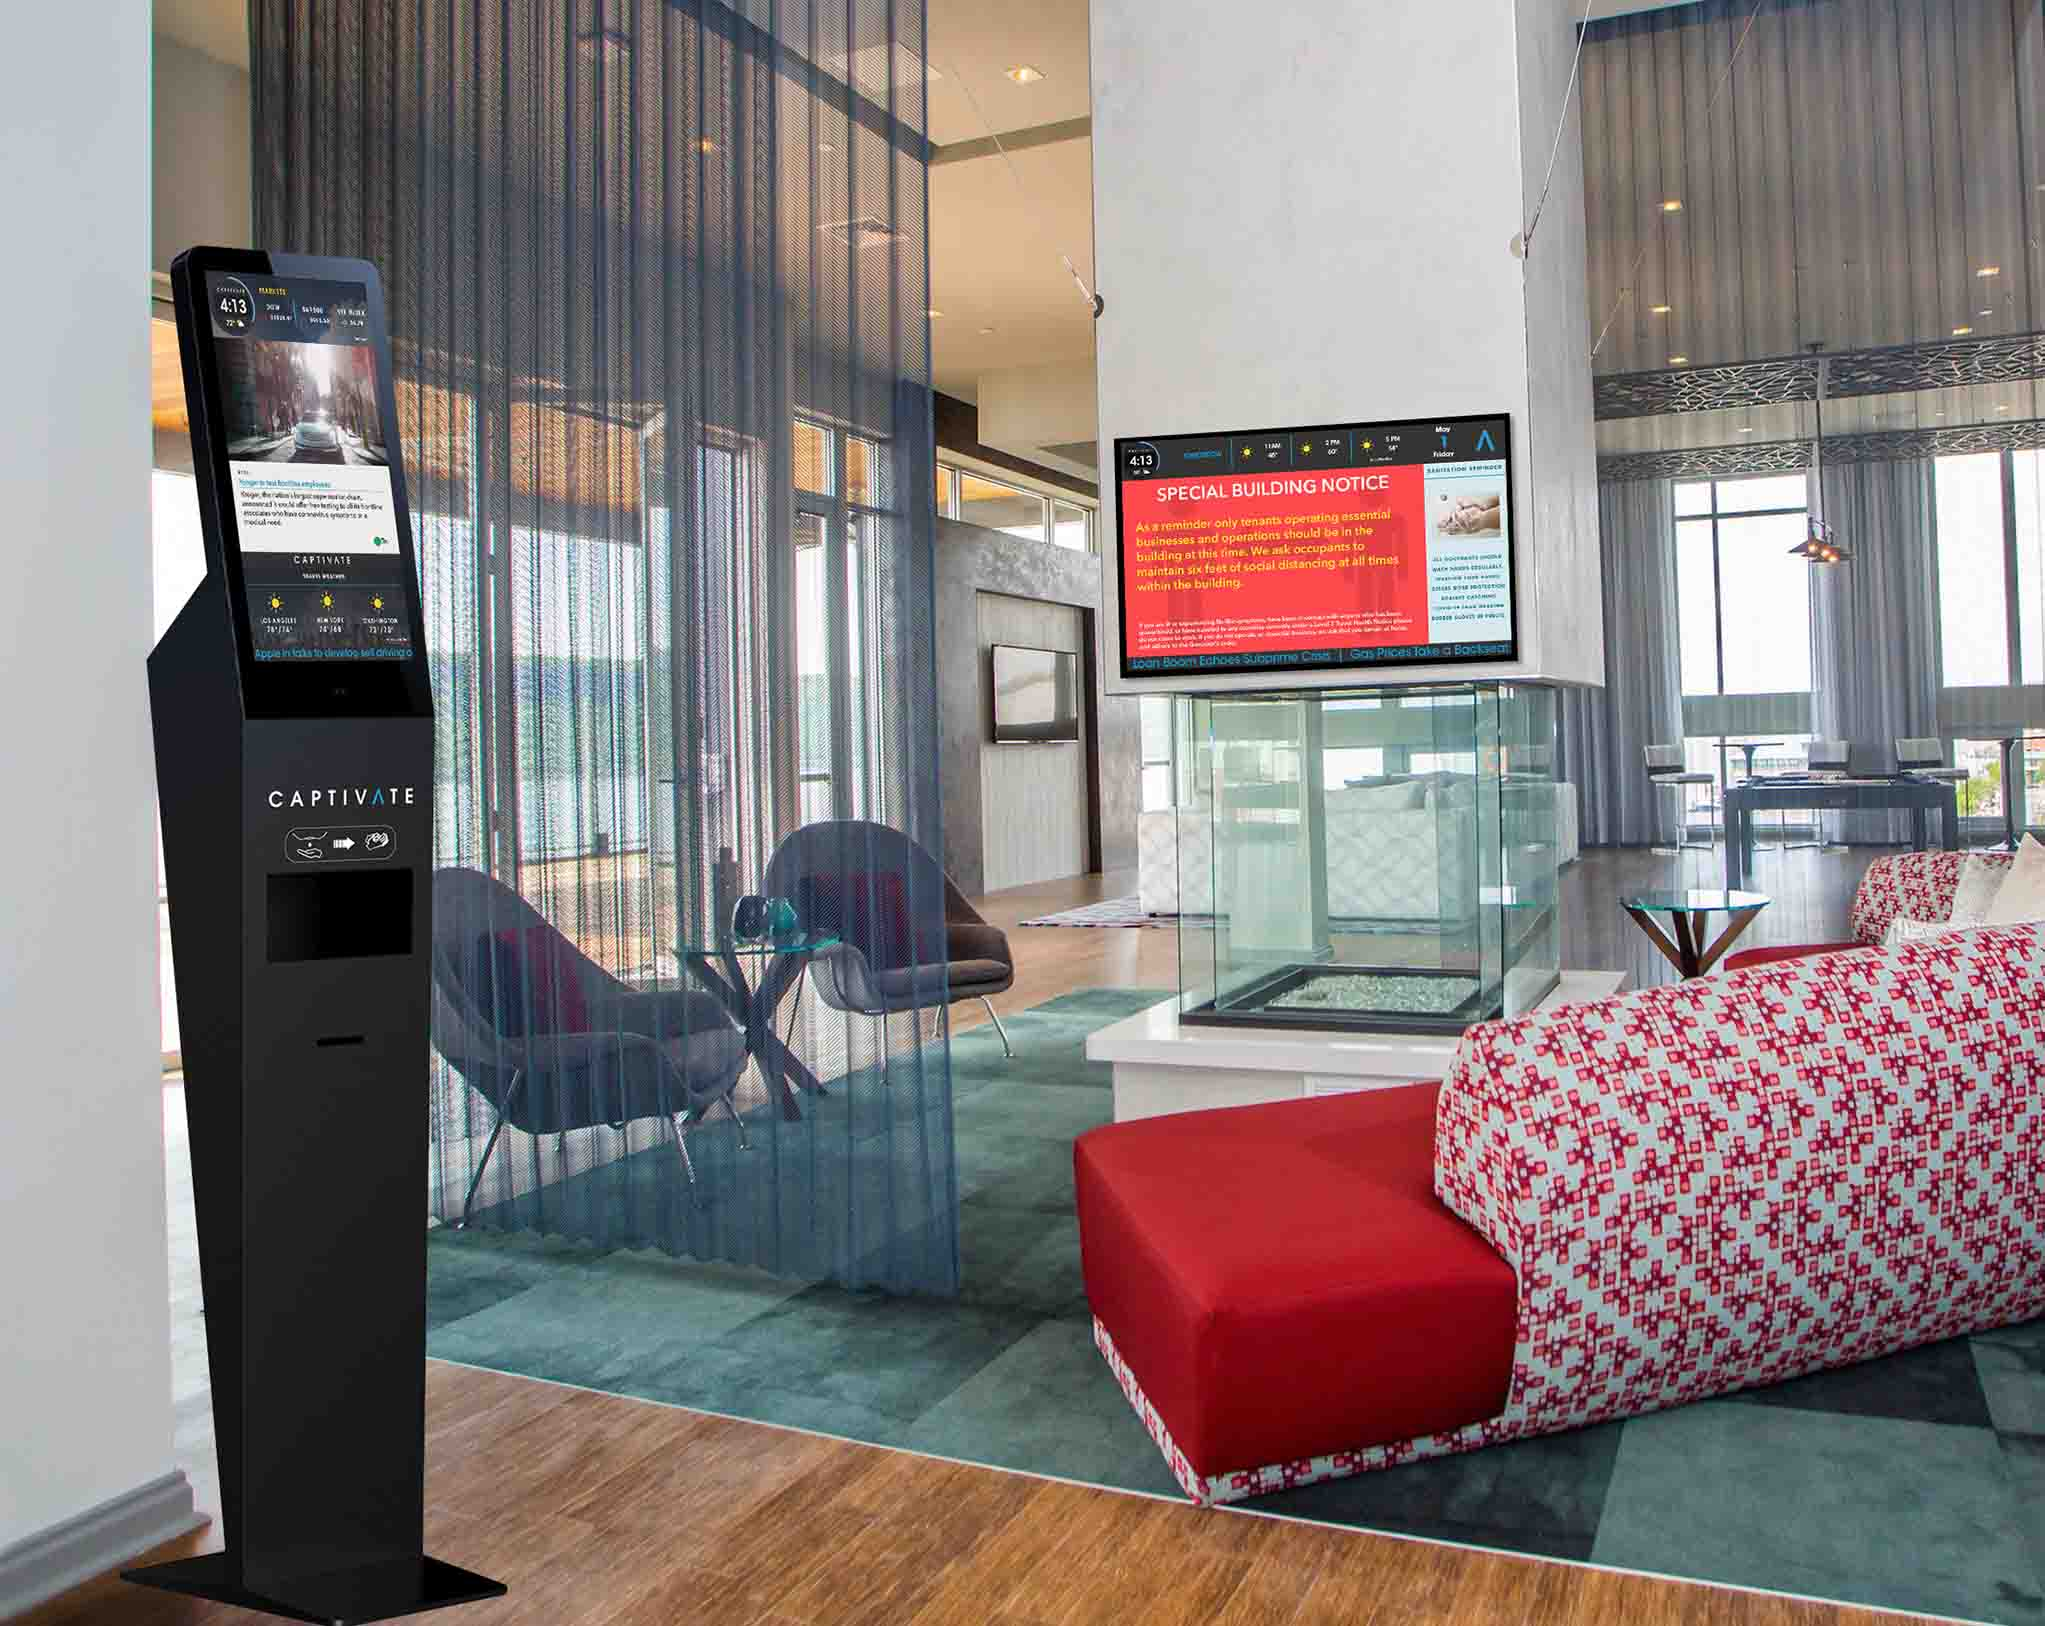 Captivate | CLEAN Hand Sanitizer Dispenser and Digital Display to keep visitors safe